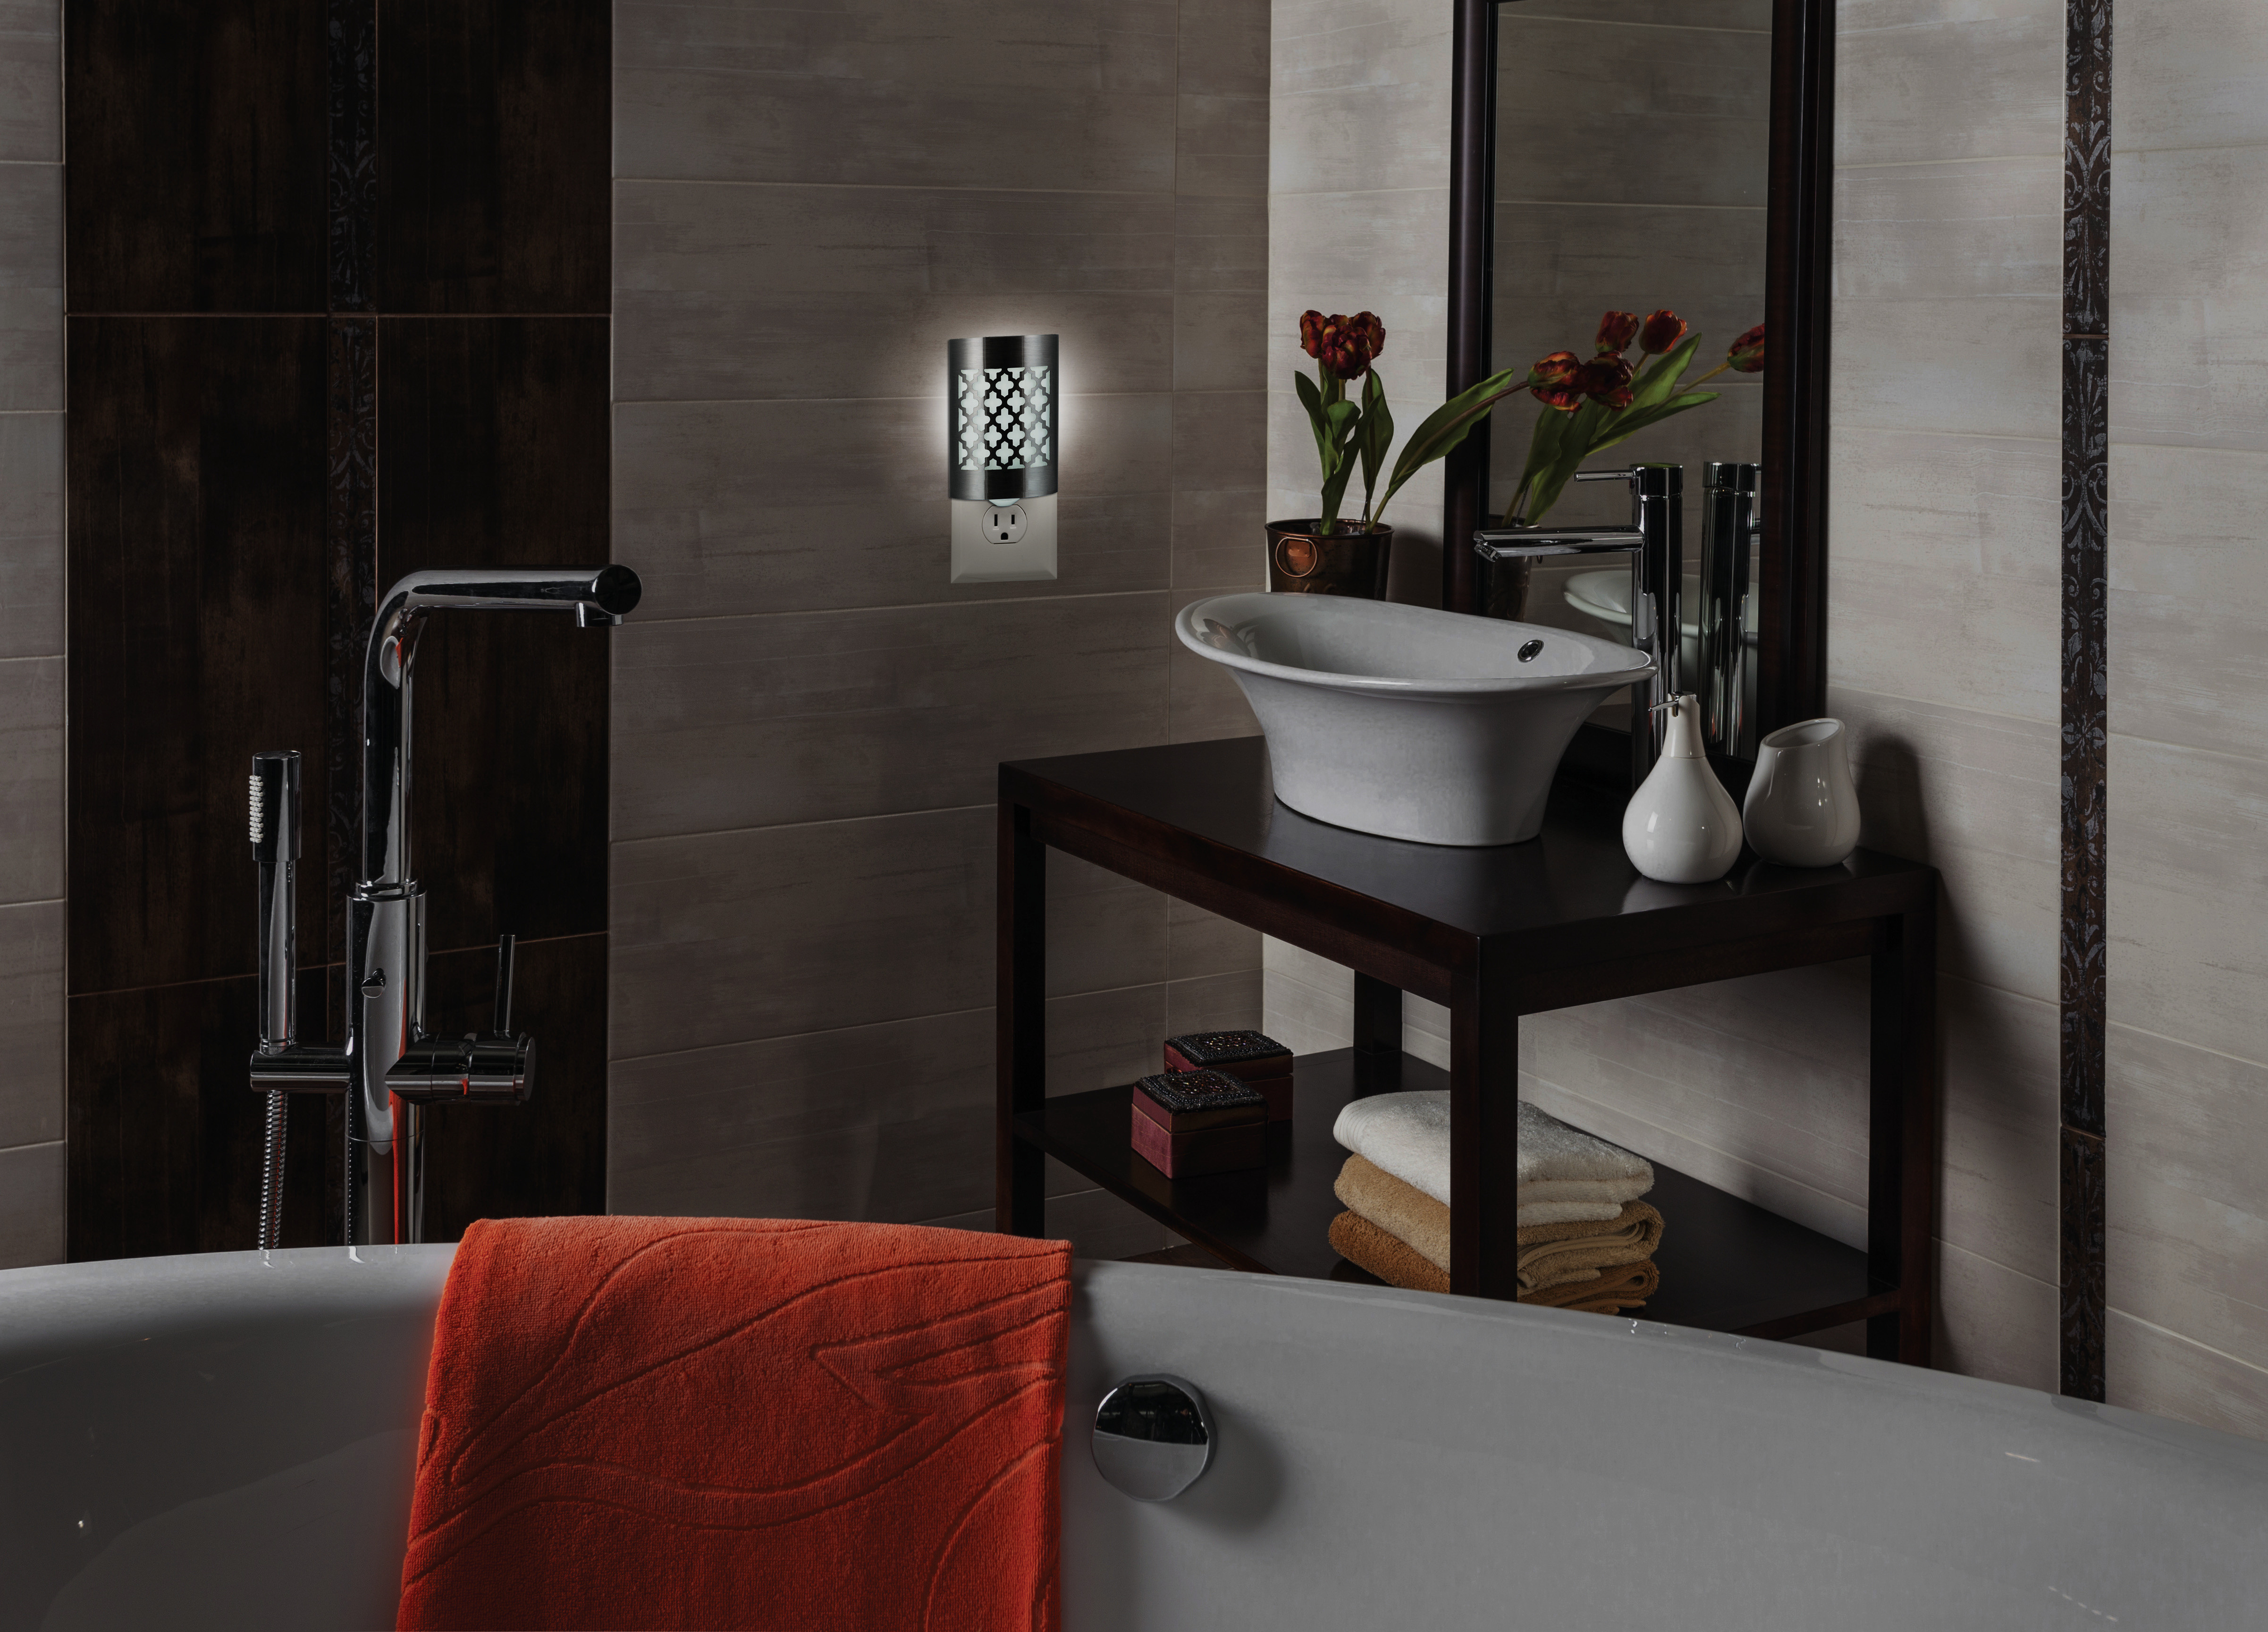 Brush nickel decorative night lights bring high end finishes to small places